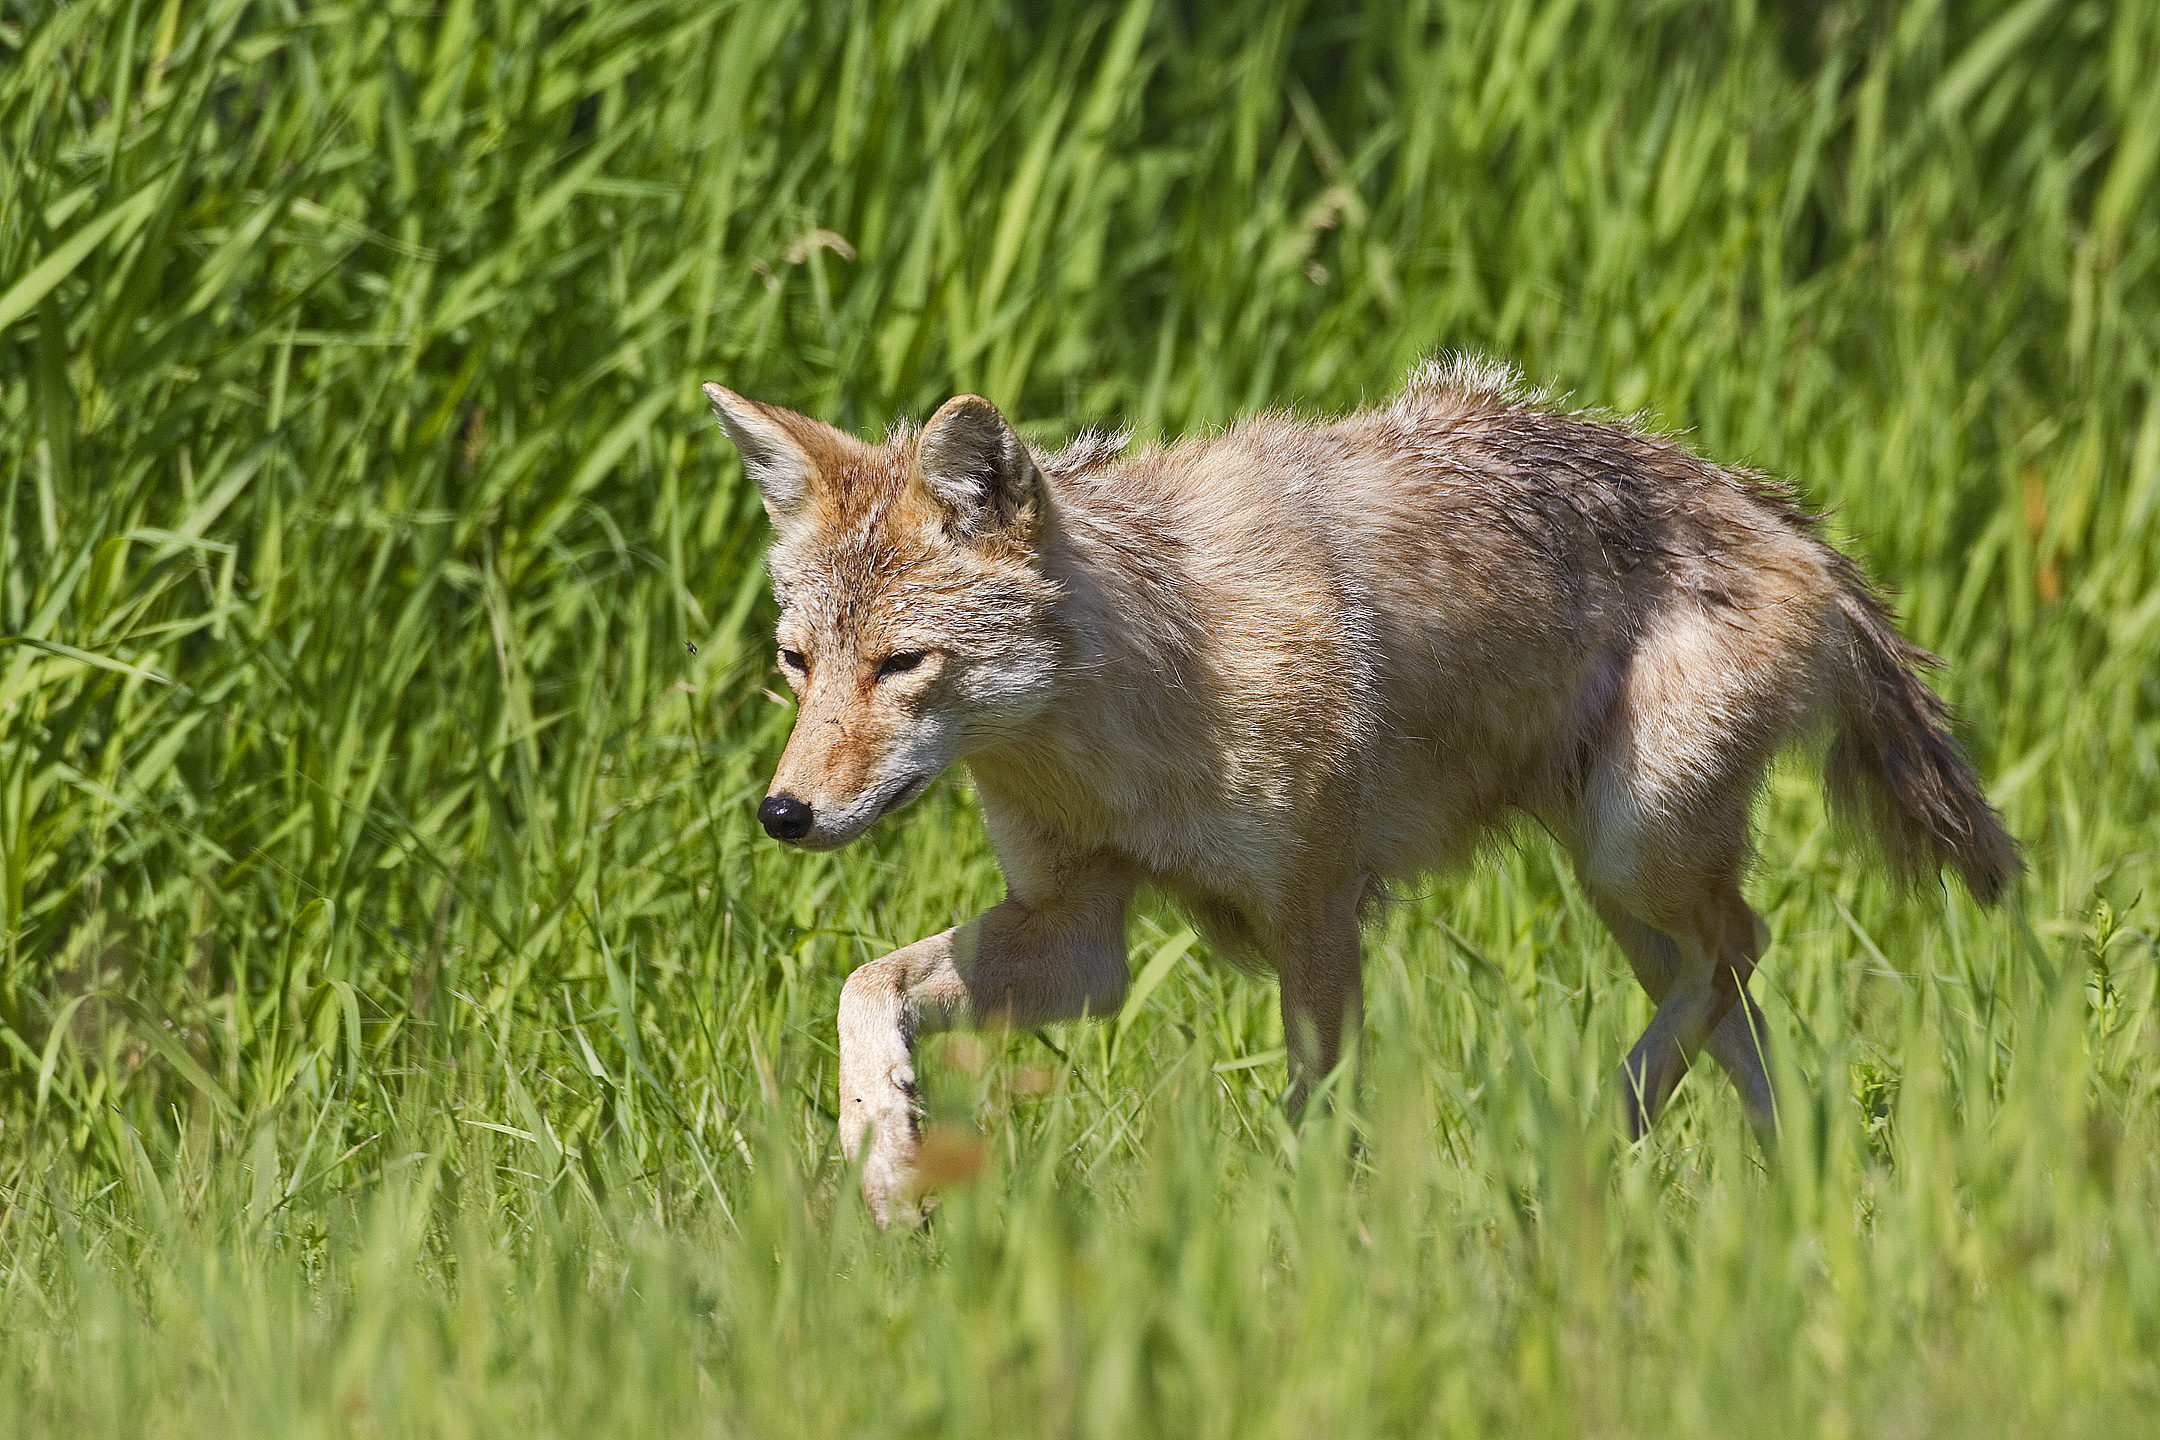 You can identify a coyote by their narrow pointed face, bushy tail, large ears compared to body size, and relatively smaller than a wolf.